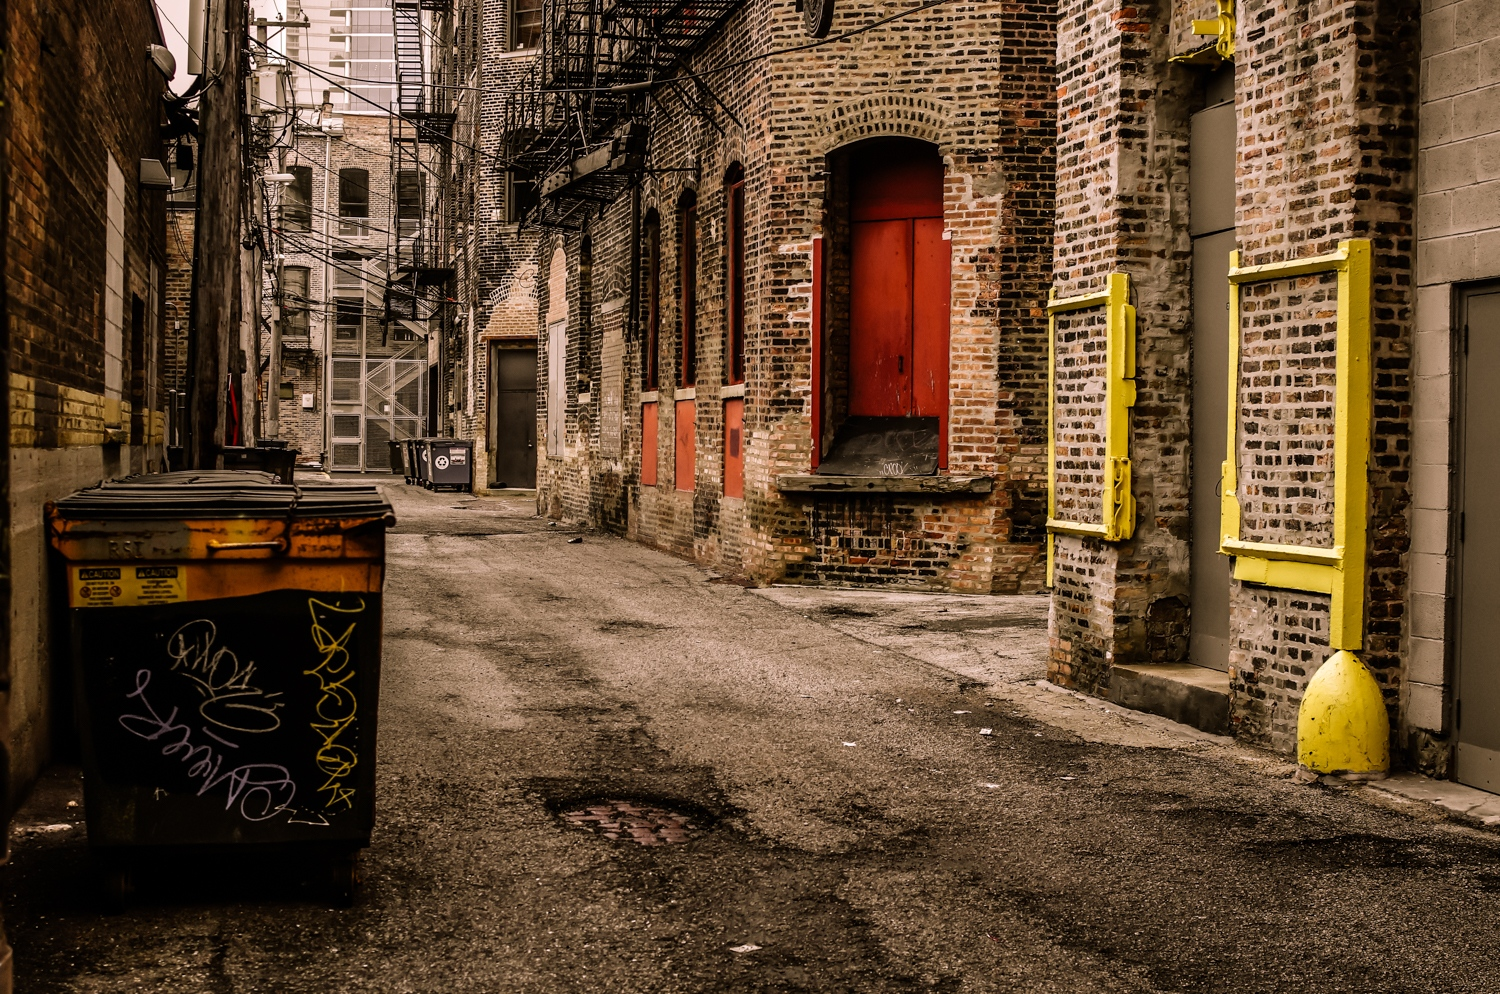 Art and Documentary Photography - Loading -The_Street_as_Graphic_Novel__River_North_Alley__Chicago_2018.jpg